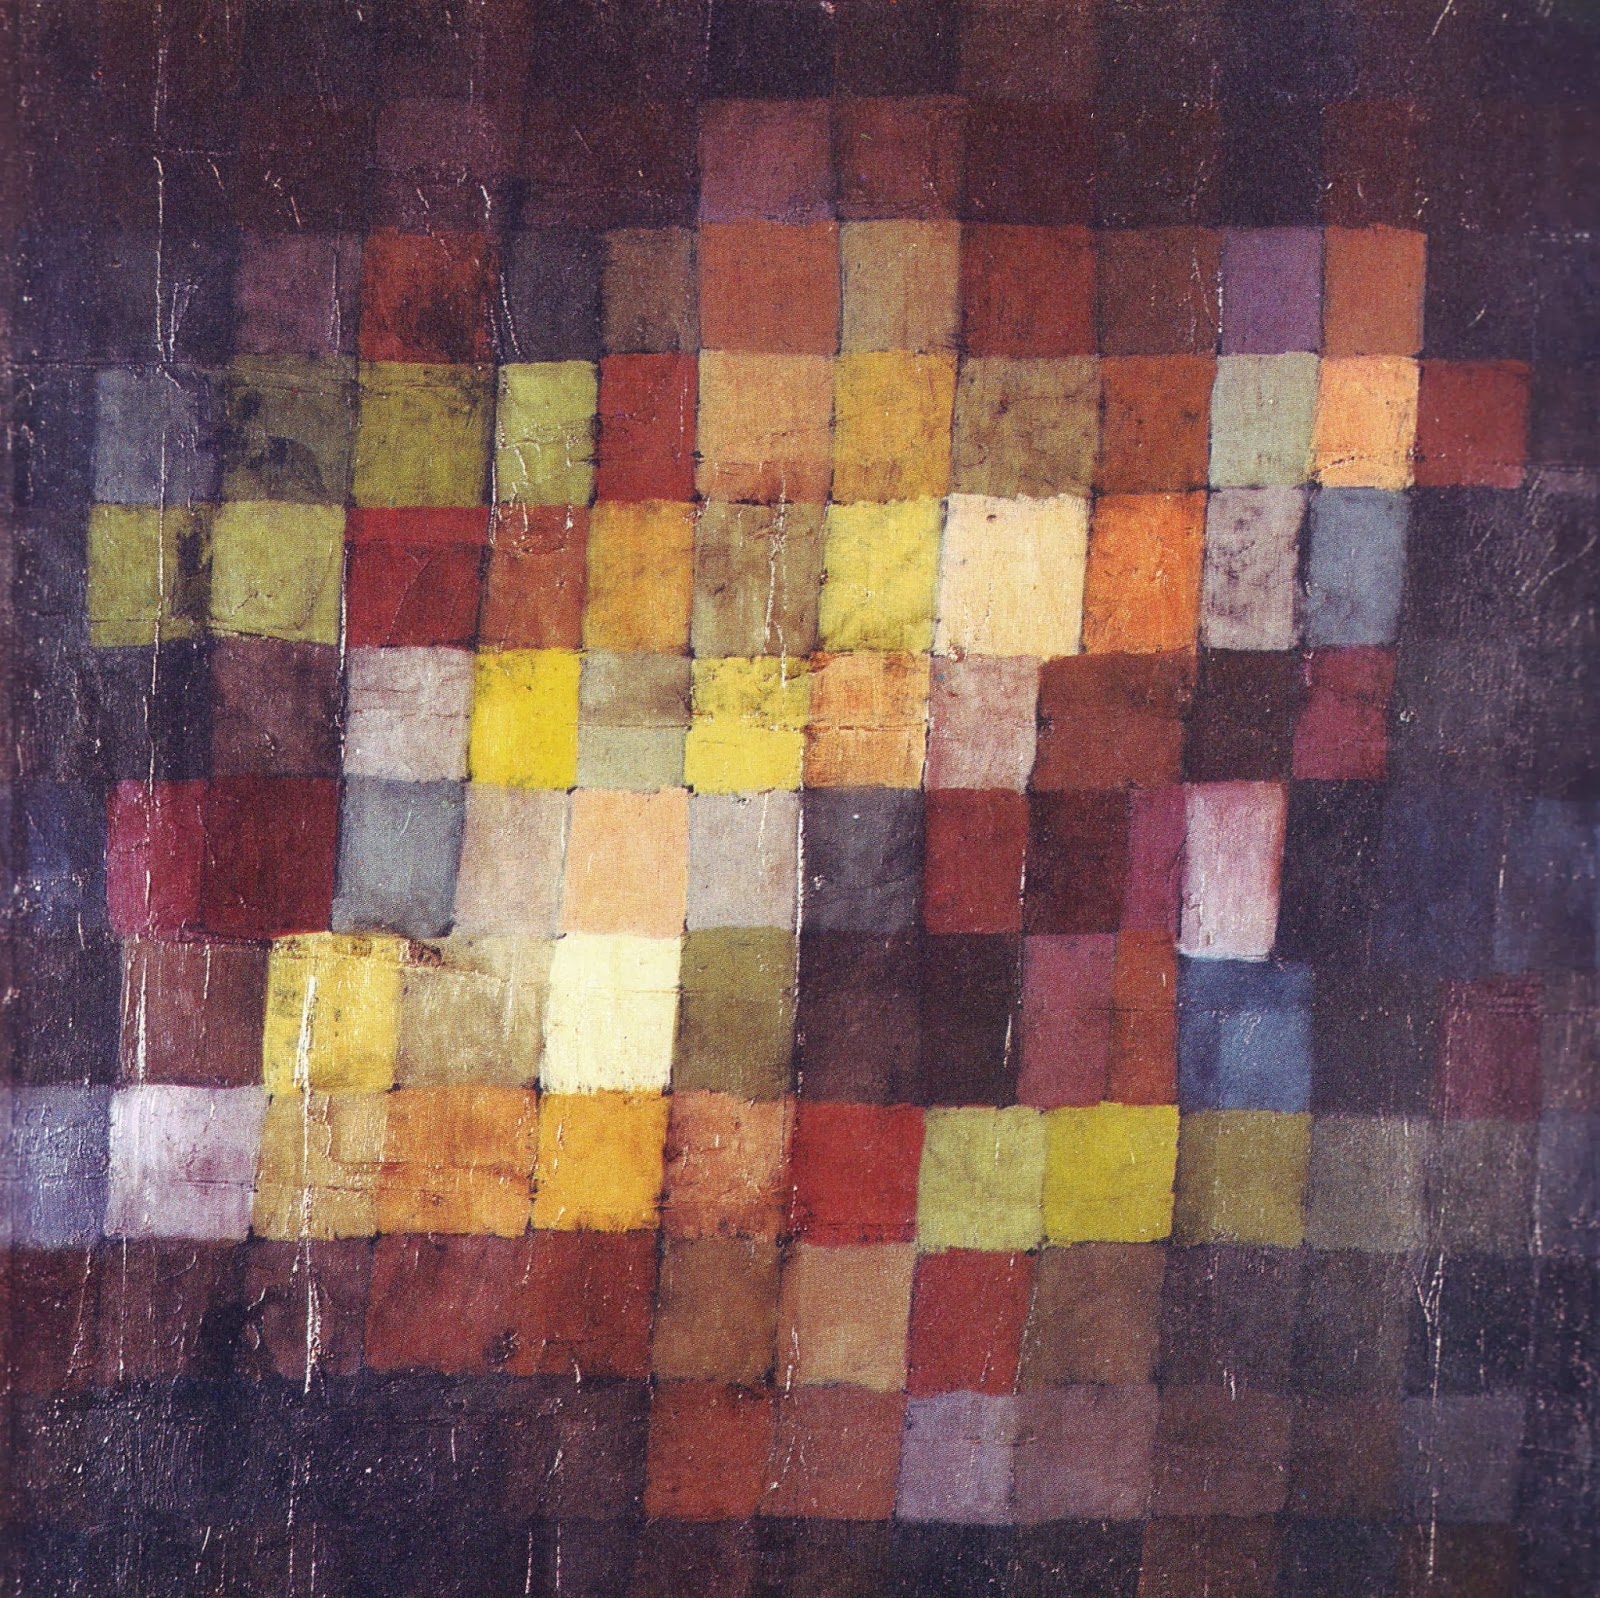 paul klee essay Paul klee: the bauhaus years, curated by olivier berggruen the exhibition emphasised klee's work, from his army release in 1918 until his.